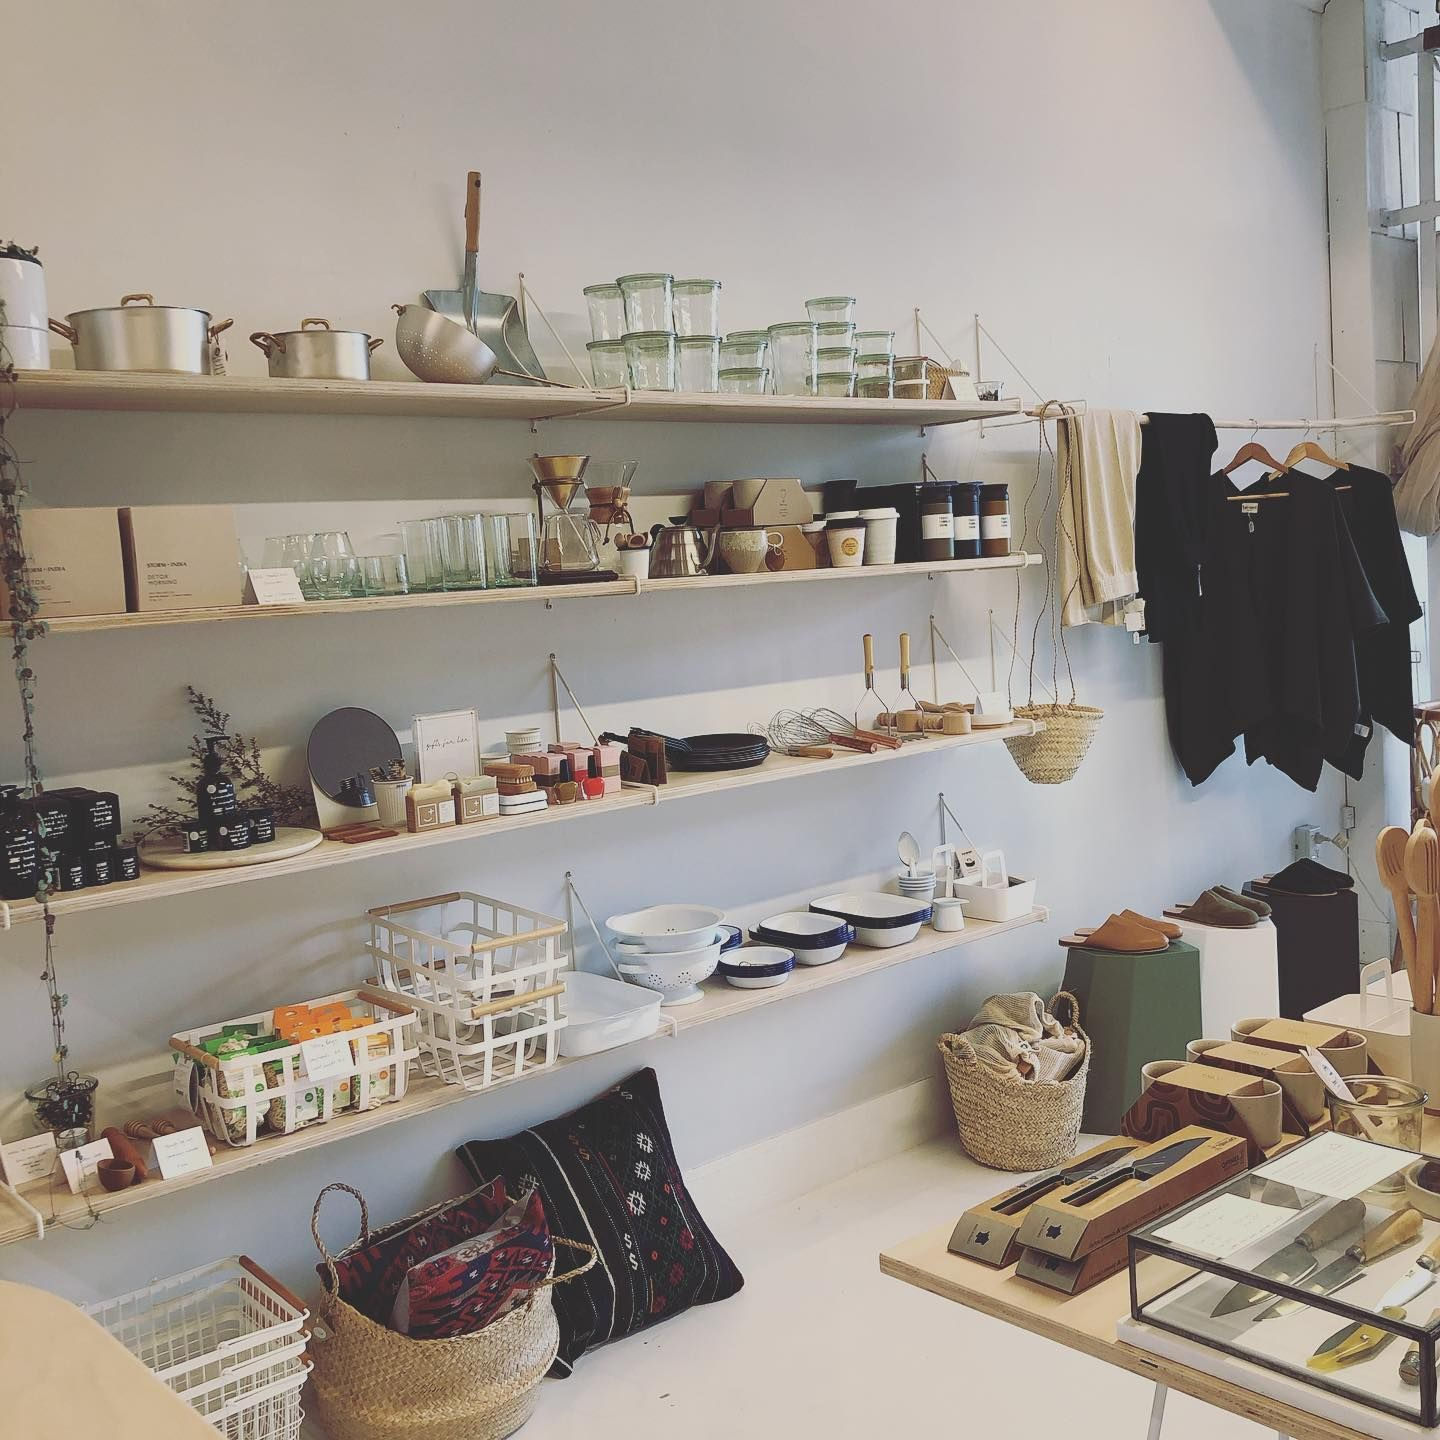 Shop baby ✨  Open today 10-4pm  #shoplocal #supportsmallbusiness #whangarei